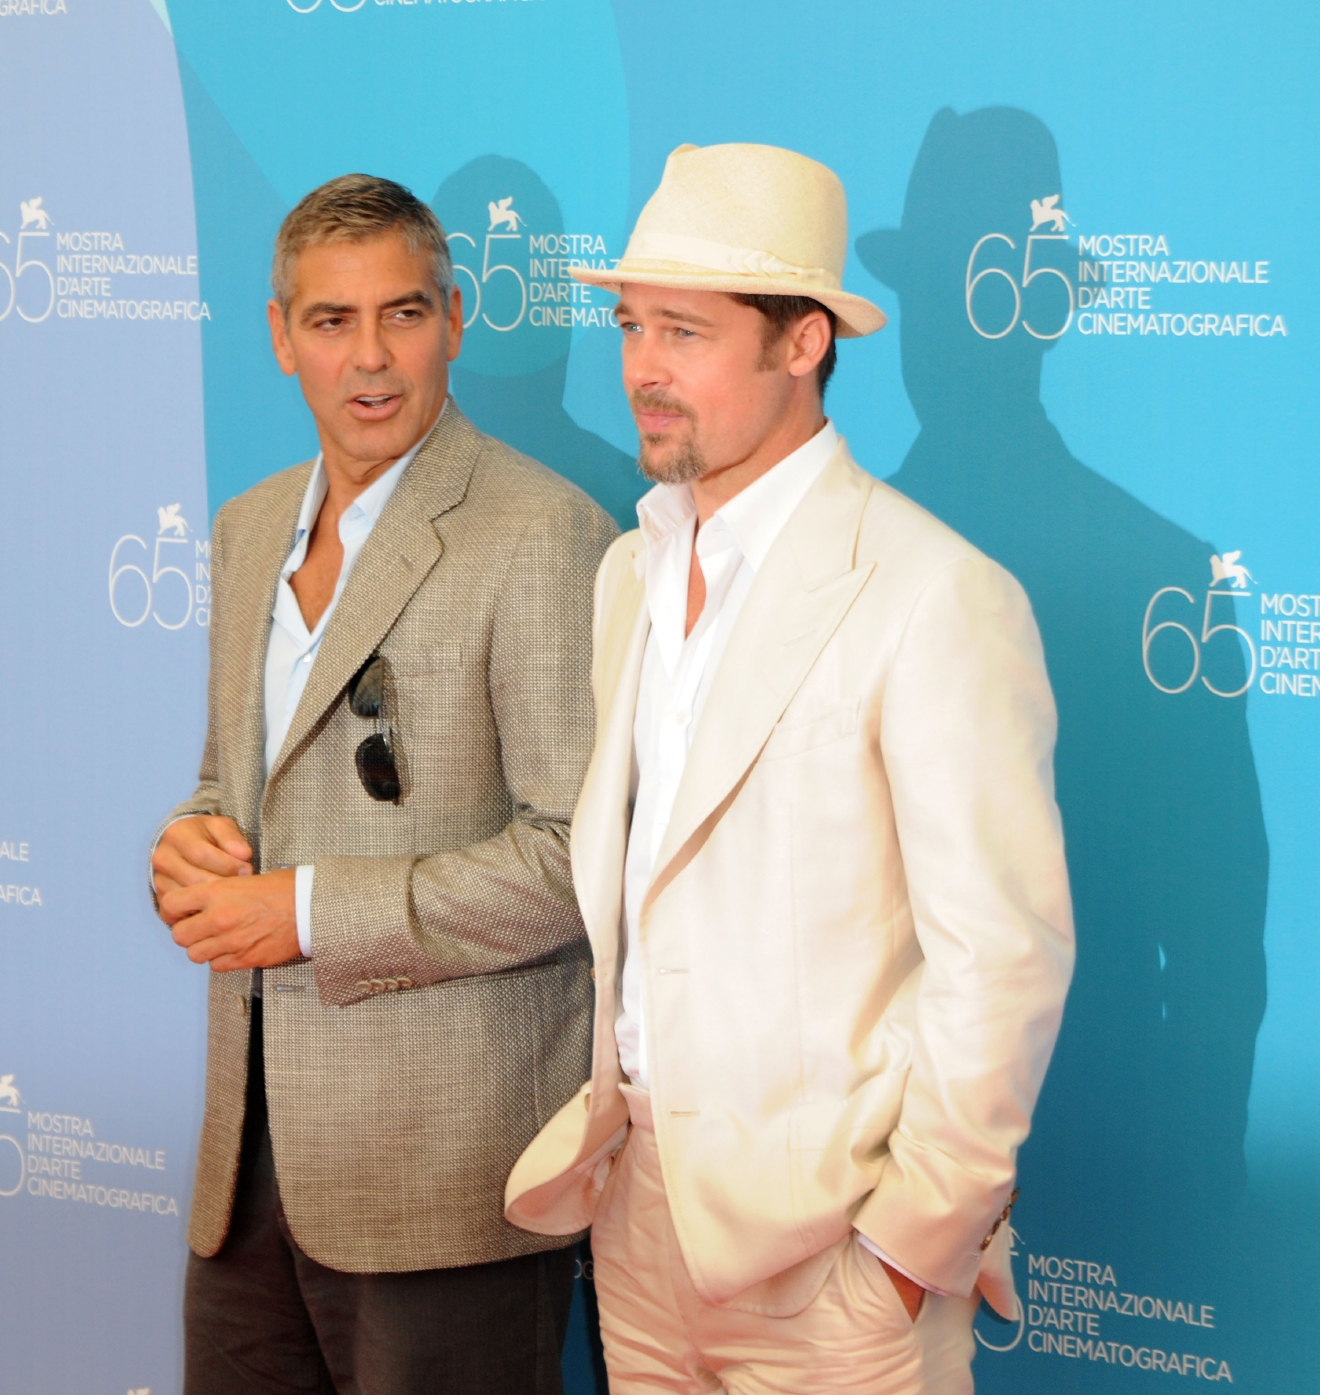 George Clooney and Brad Pitt                  65th Venice Film Festival - Day 1 - 'Burn After Reading' photocall                                    Featuring: George Clooney and Brad Pitt                  Where: Venice, Italy                  When: 27 Aug 2008                  Credit: WENN